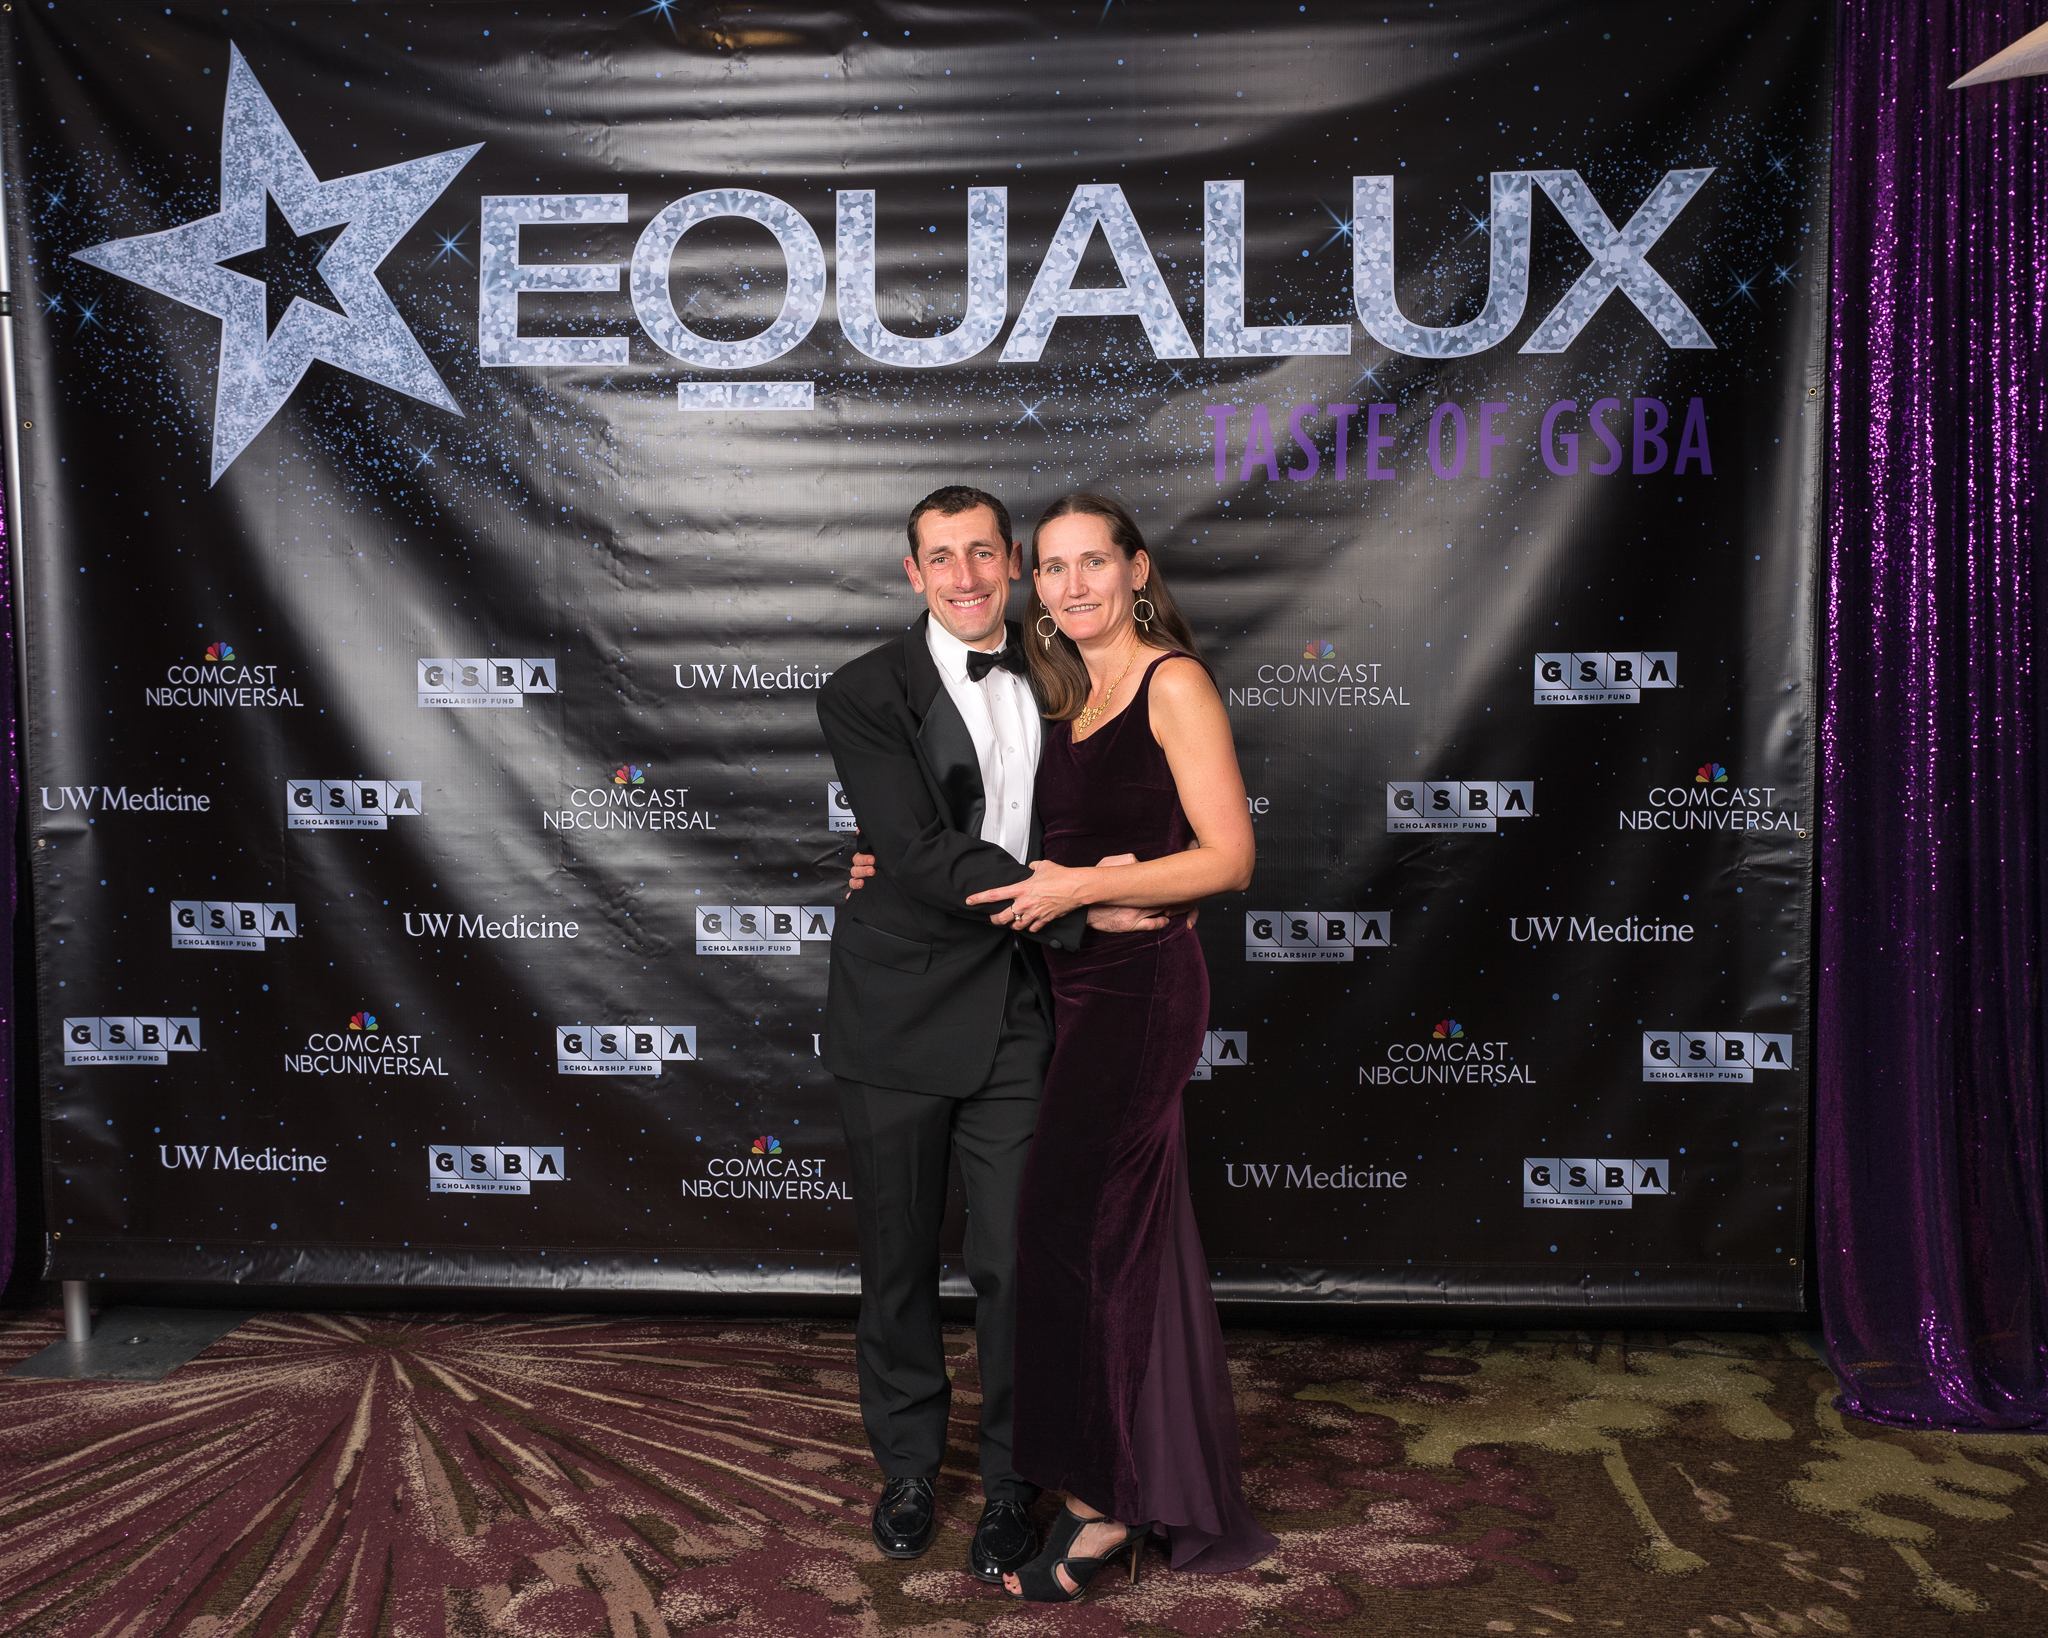 111718_GSBA EQUALUX at The Westin Seattle (Credit- Nate Gowdy)-55.jpg